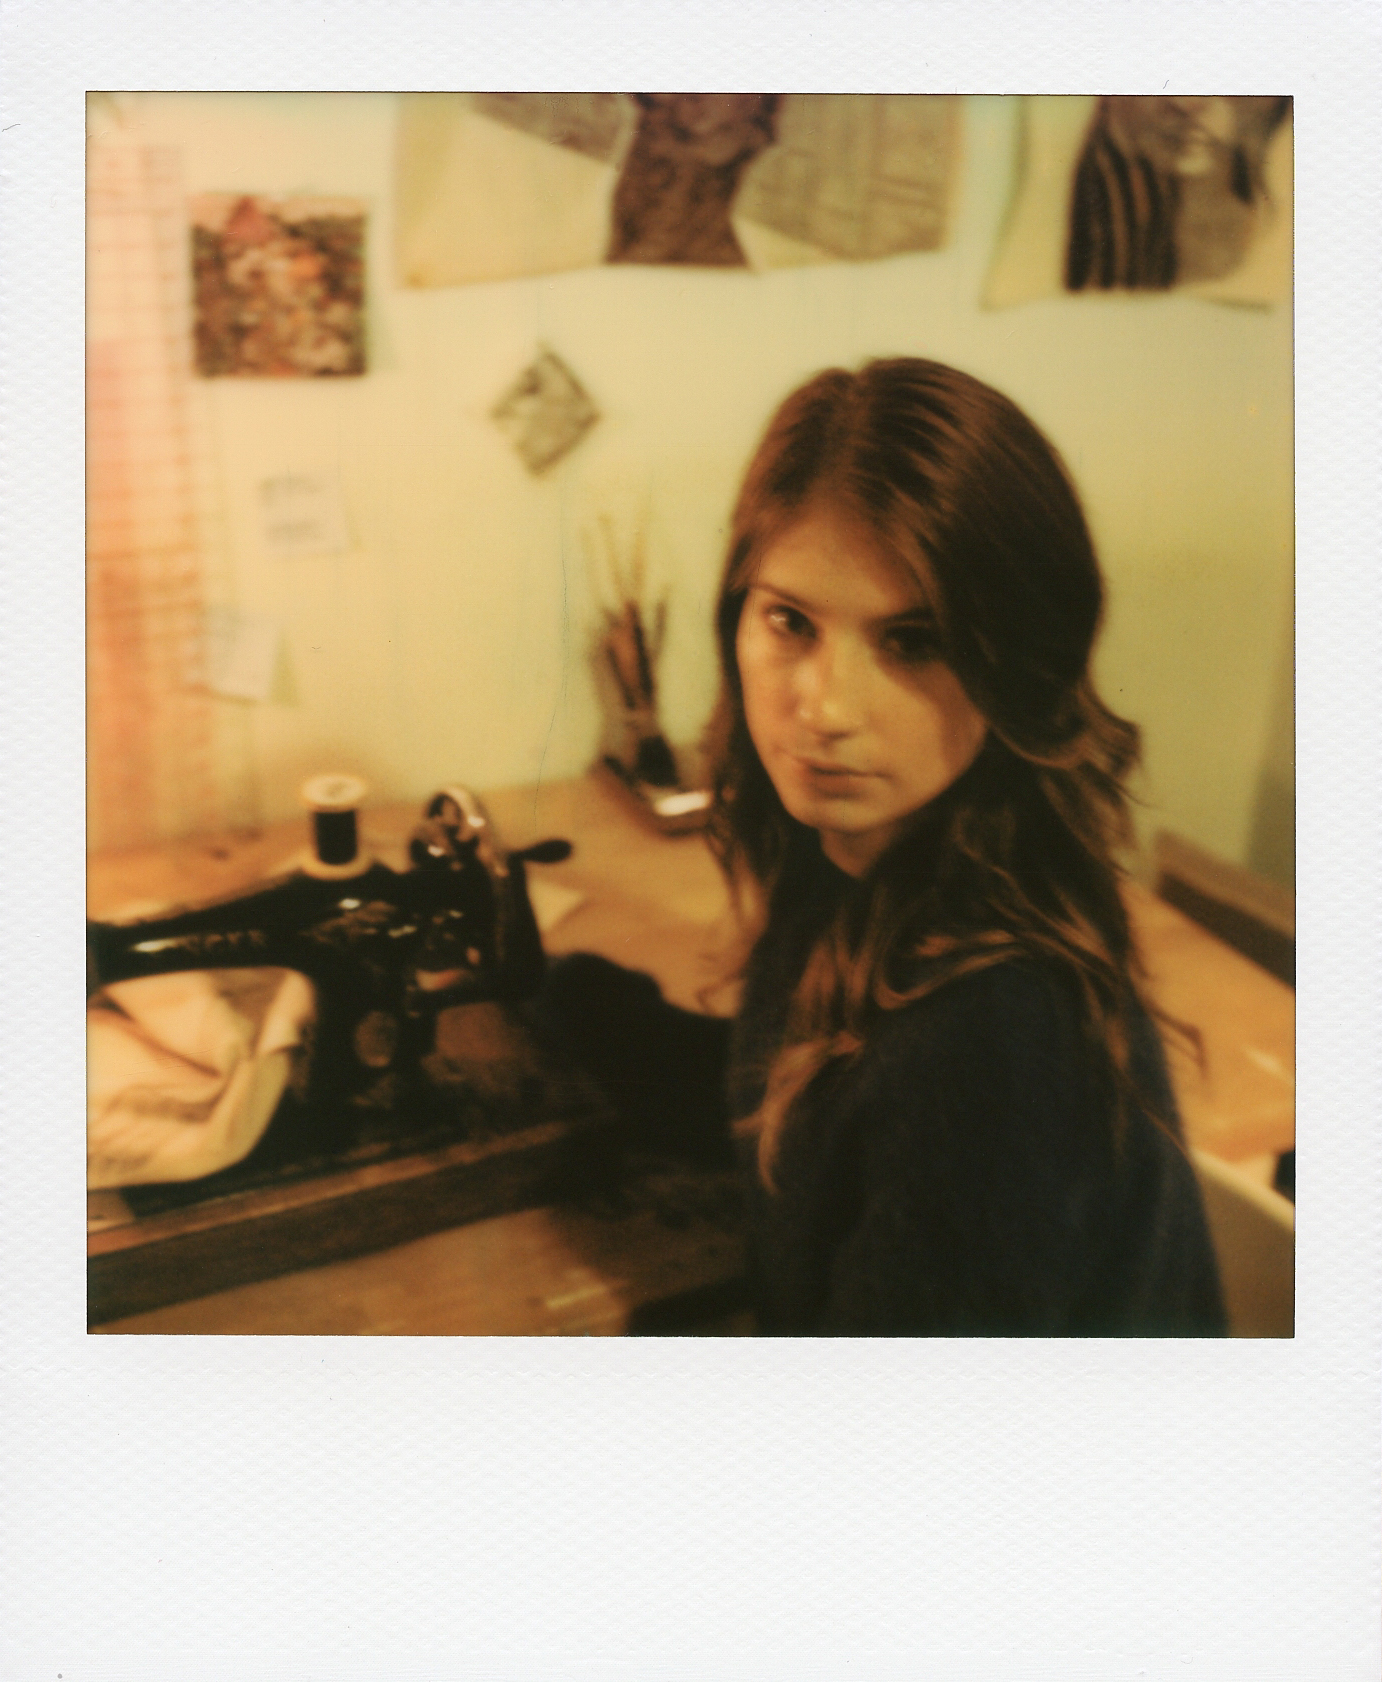 crismonts_laurarenee_polaroid_1